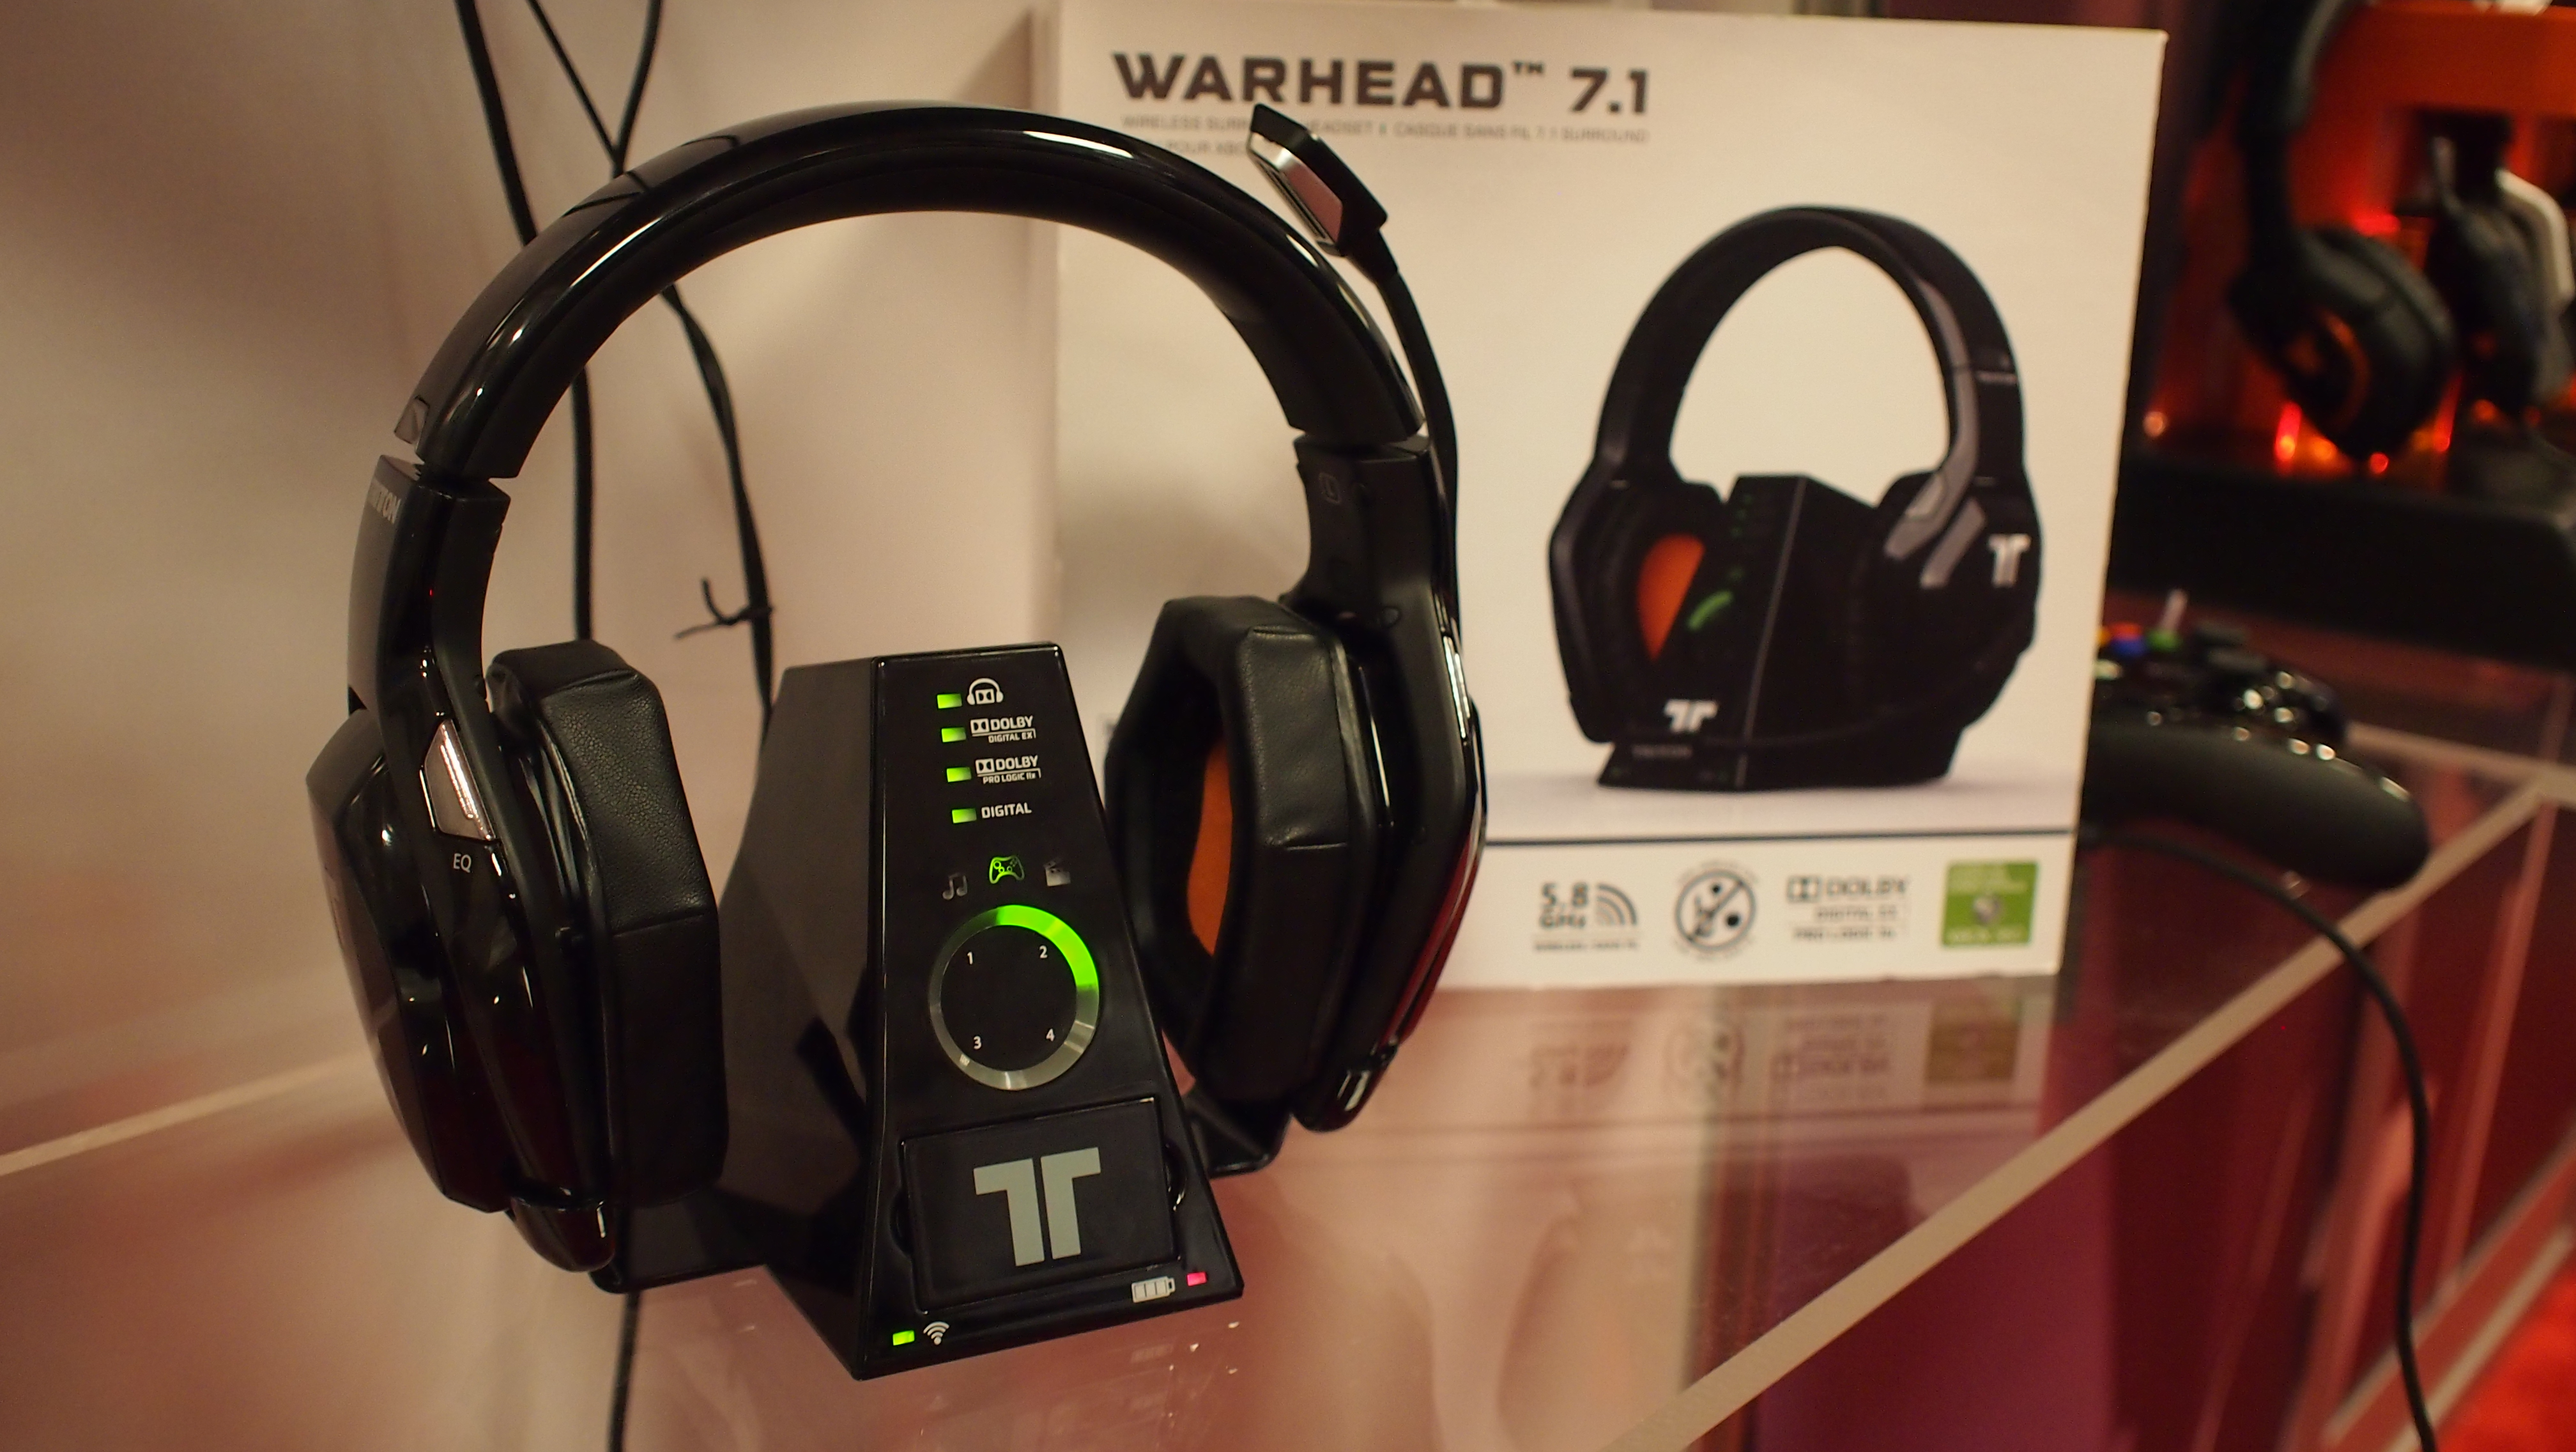 Tritton Warhead 7.1 Wireless Surround Headset for Xbox 360